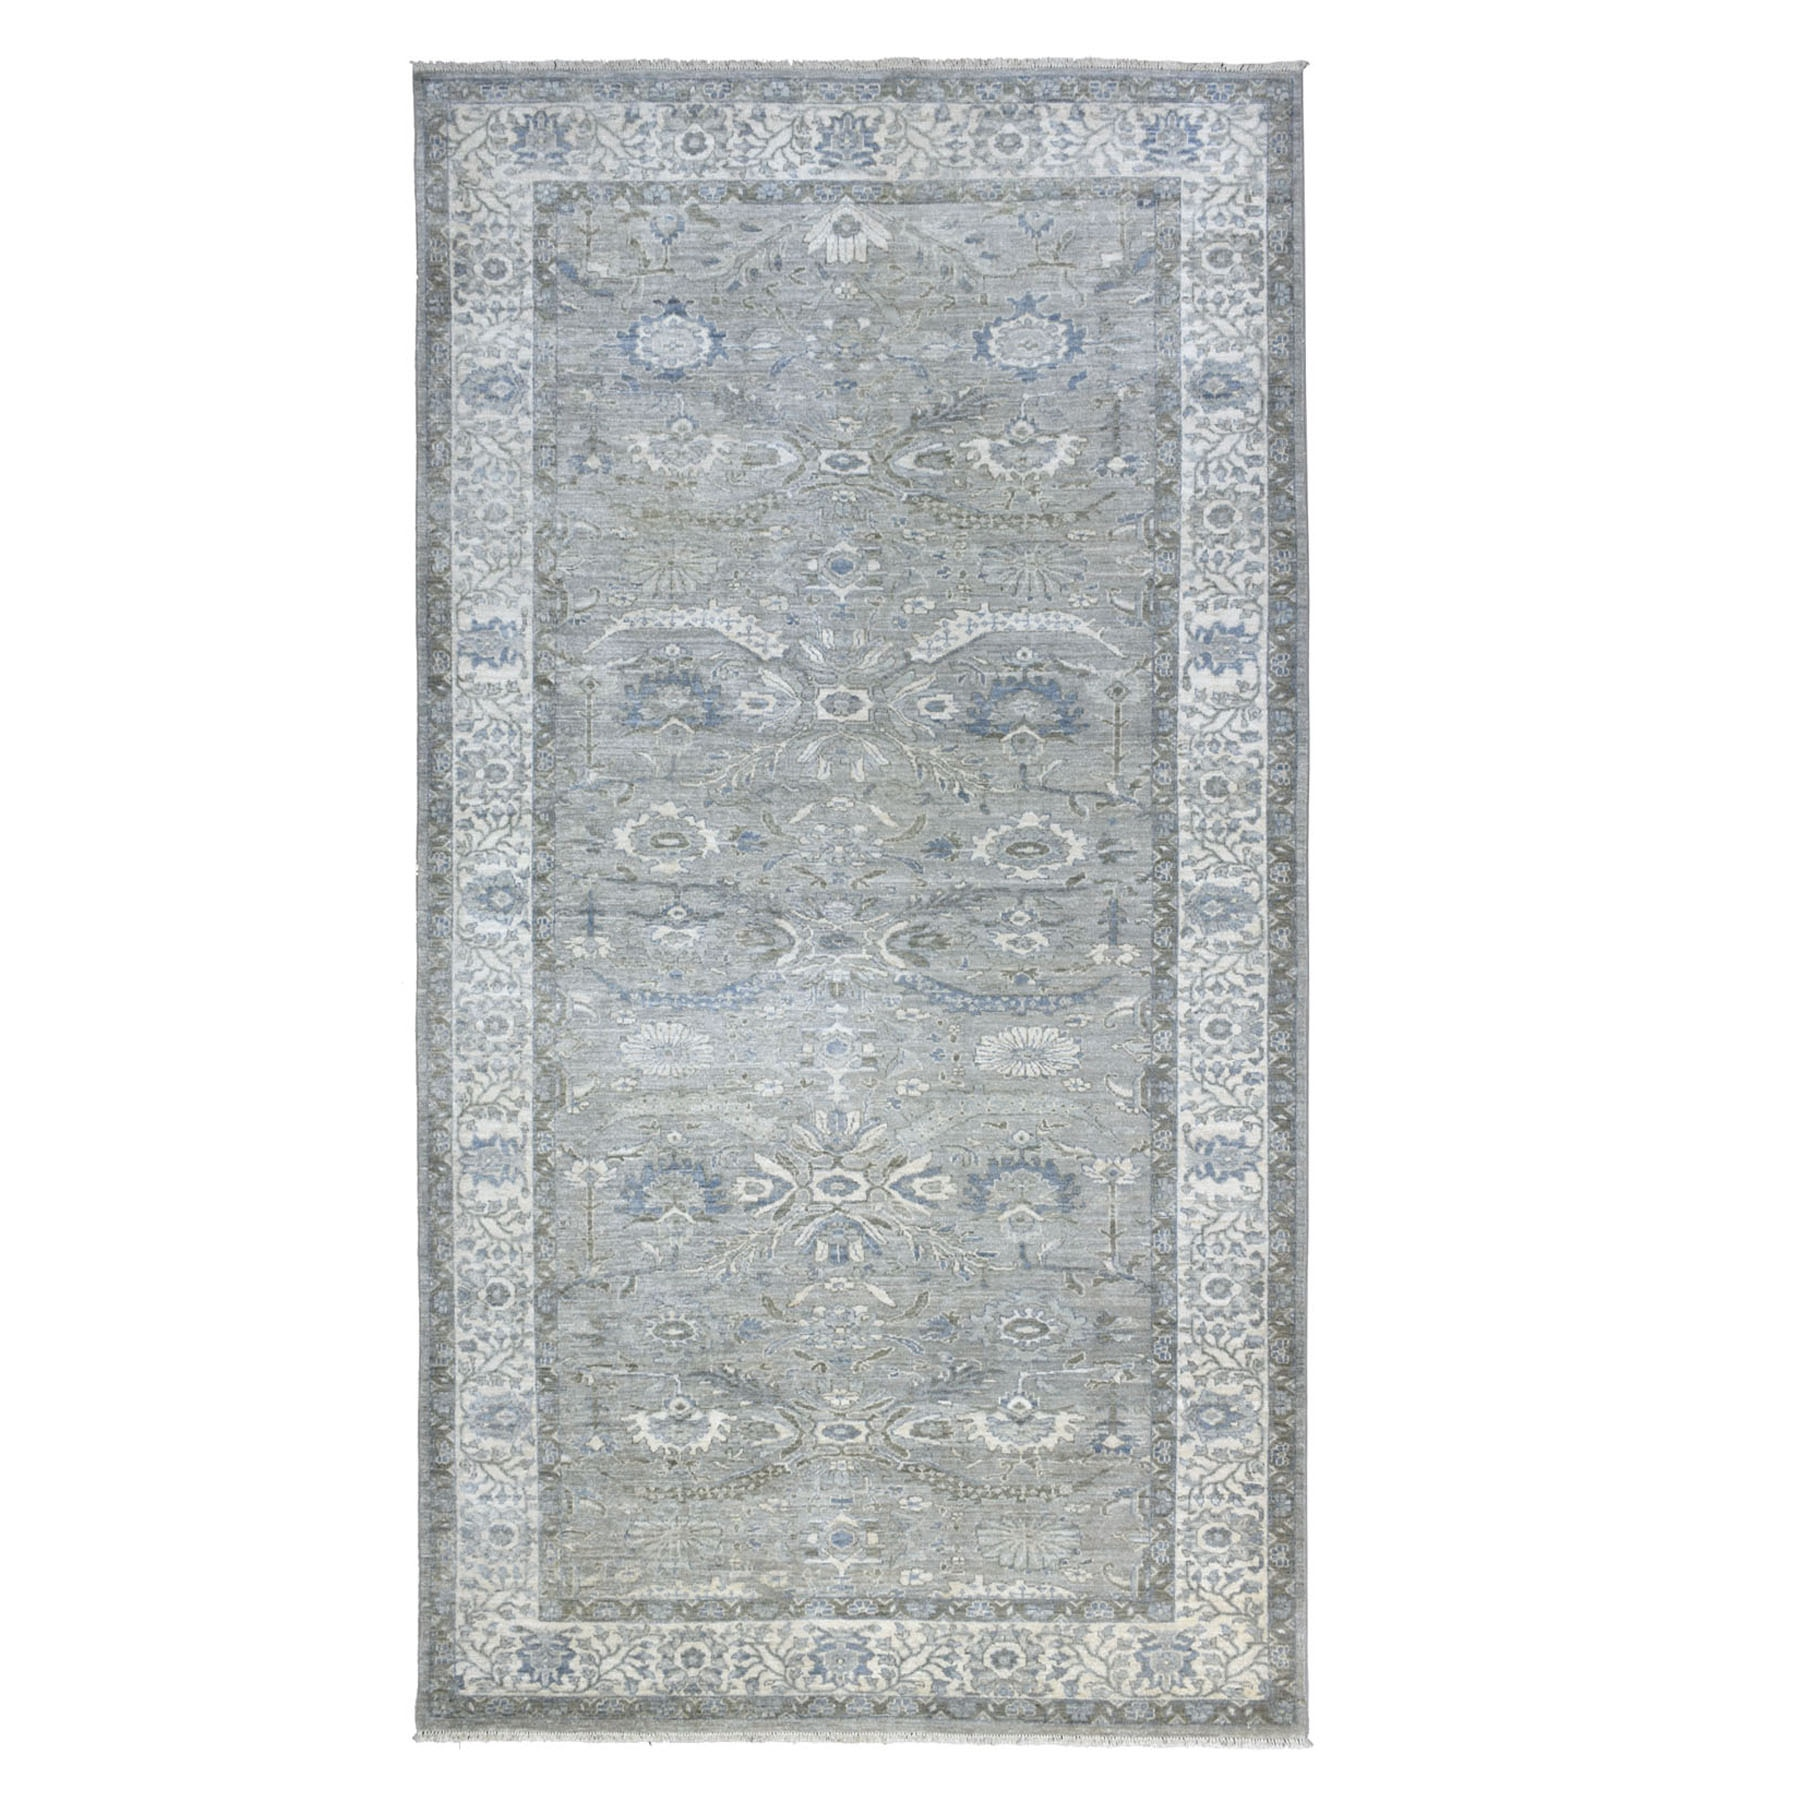 Oushak And PeshawarRugs ORC510993